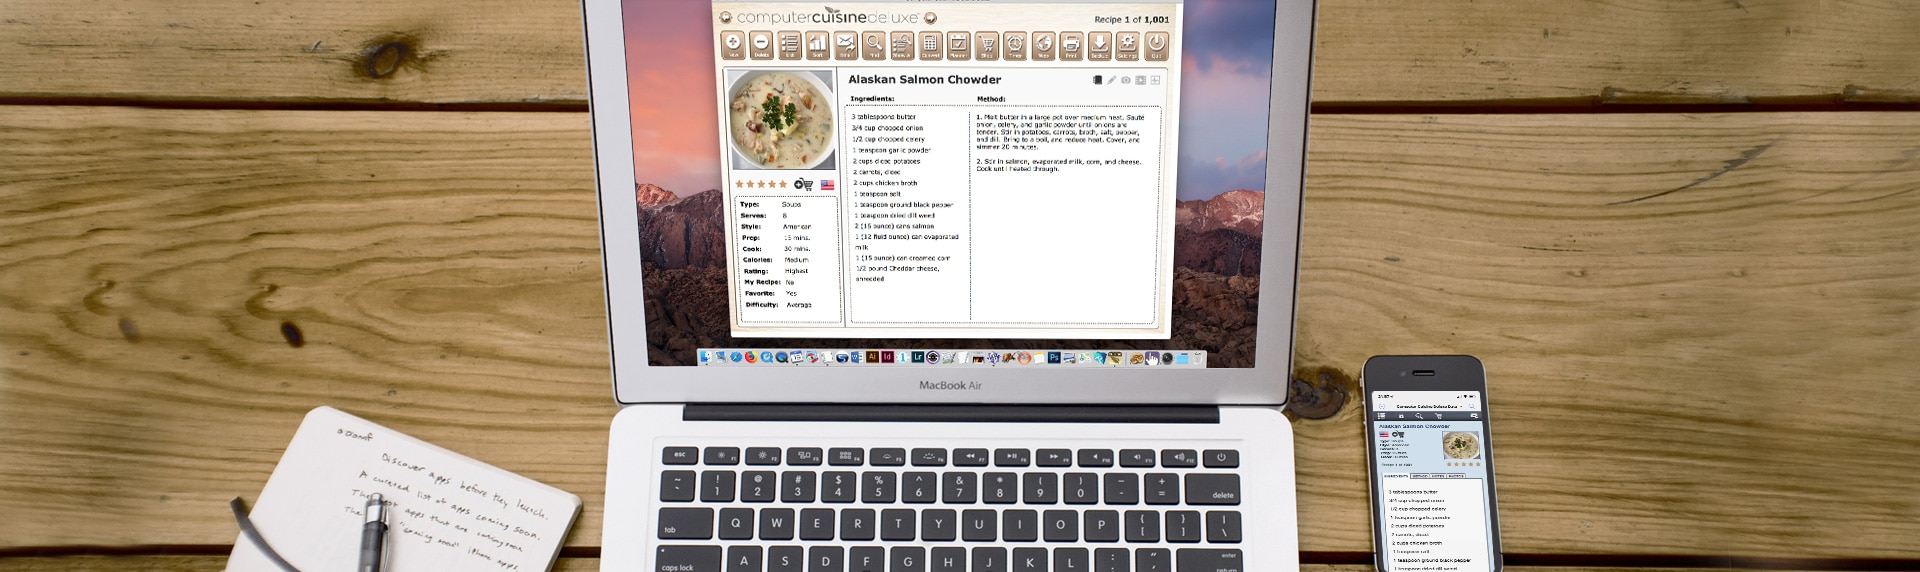 computer cuisine laptop mac recipe software version 9 MacBook Pro macOS MacBook Pro iPhone